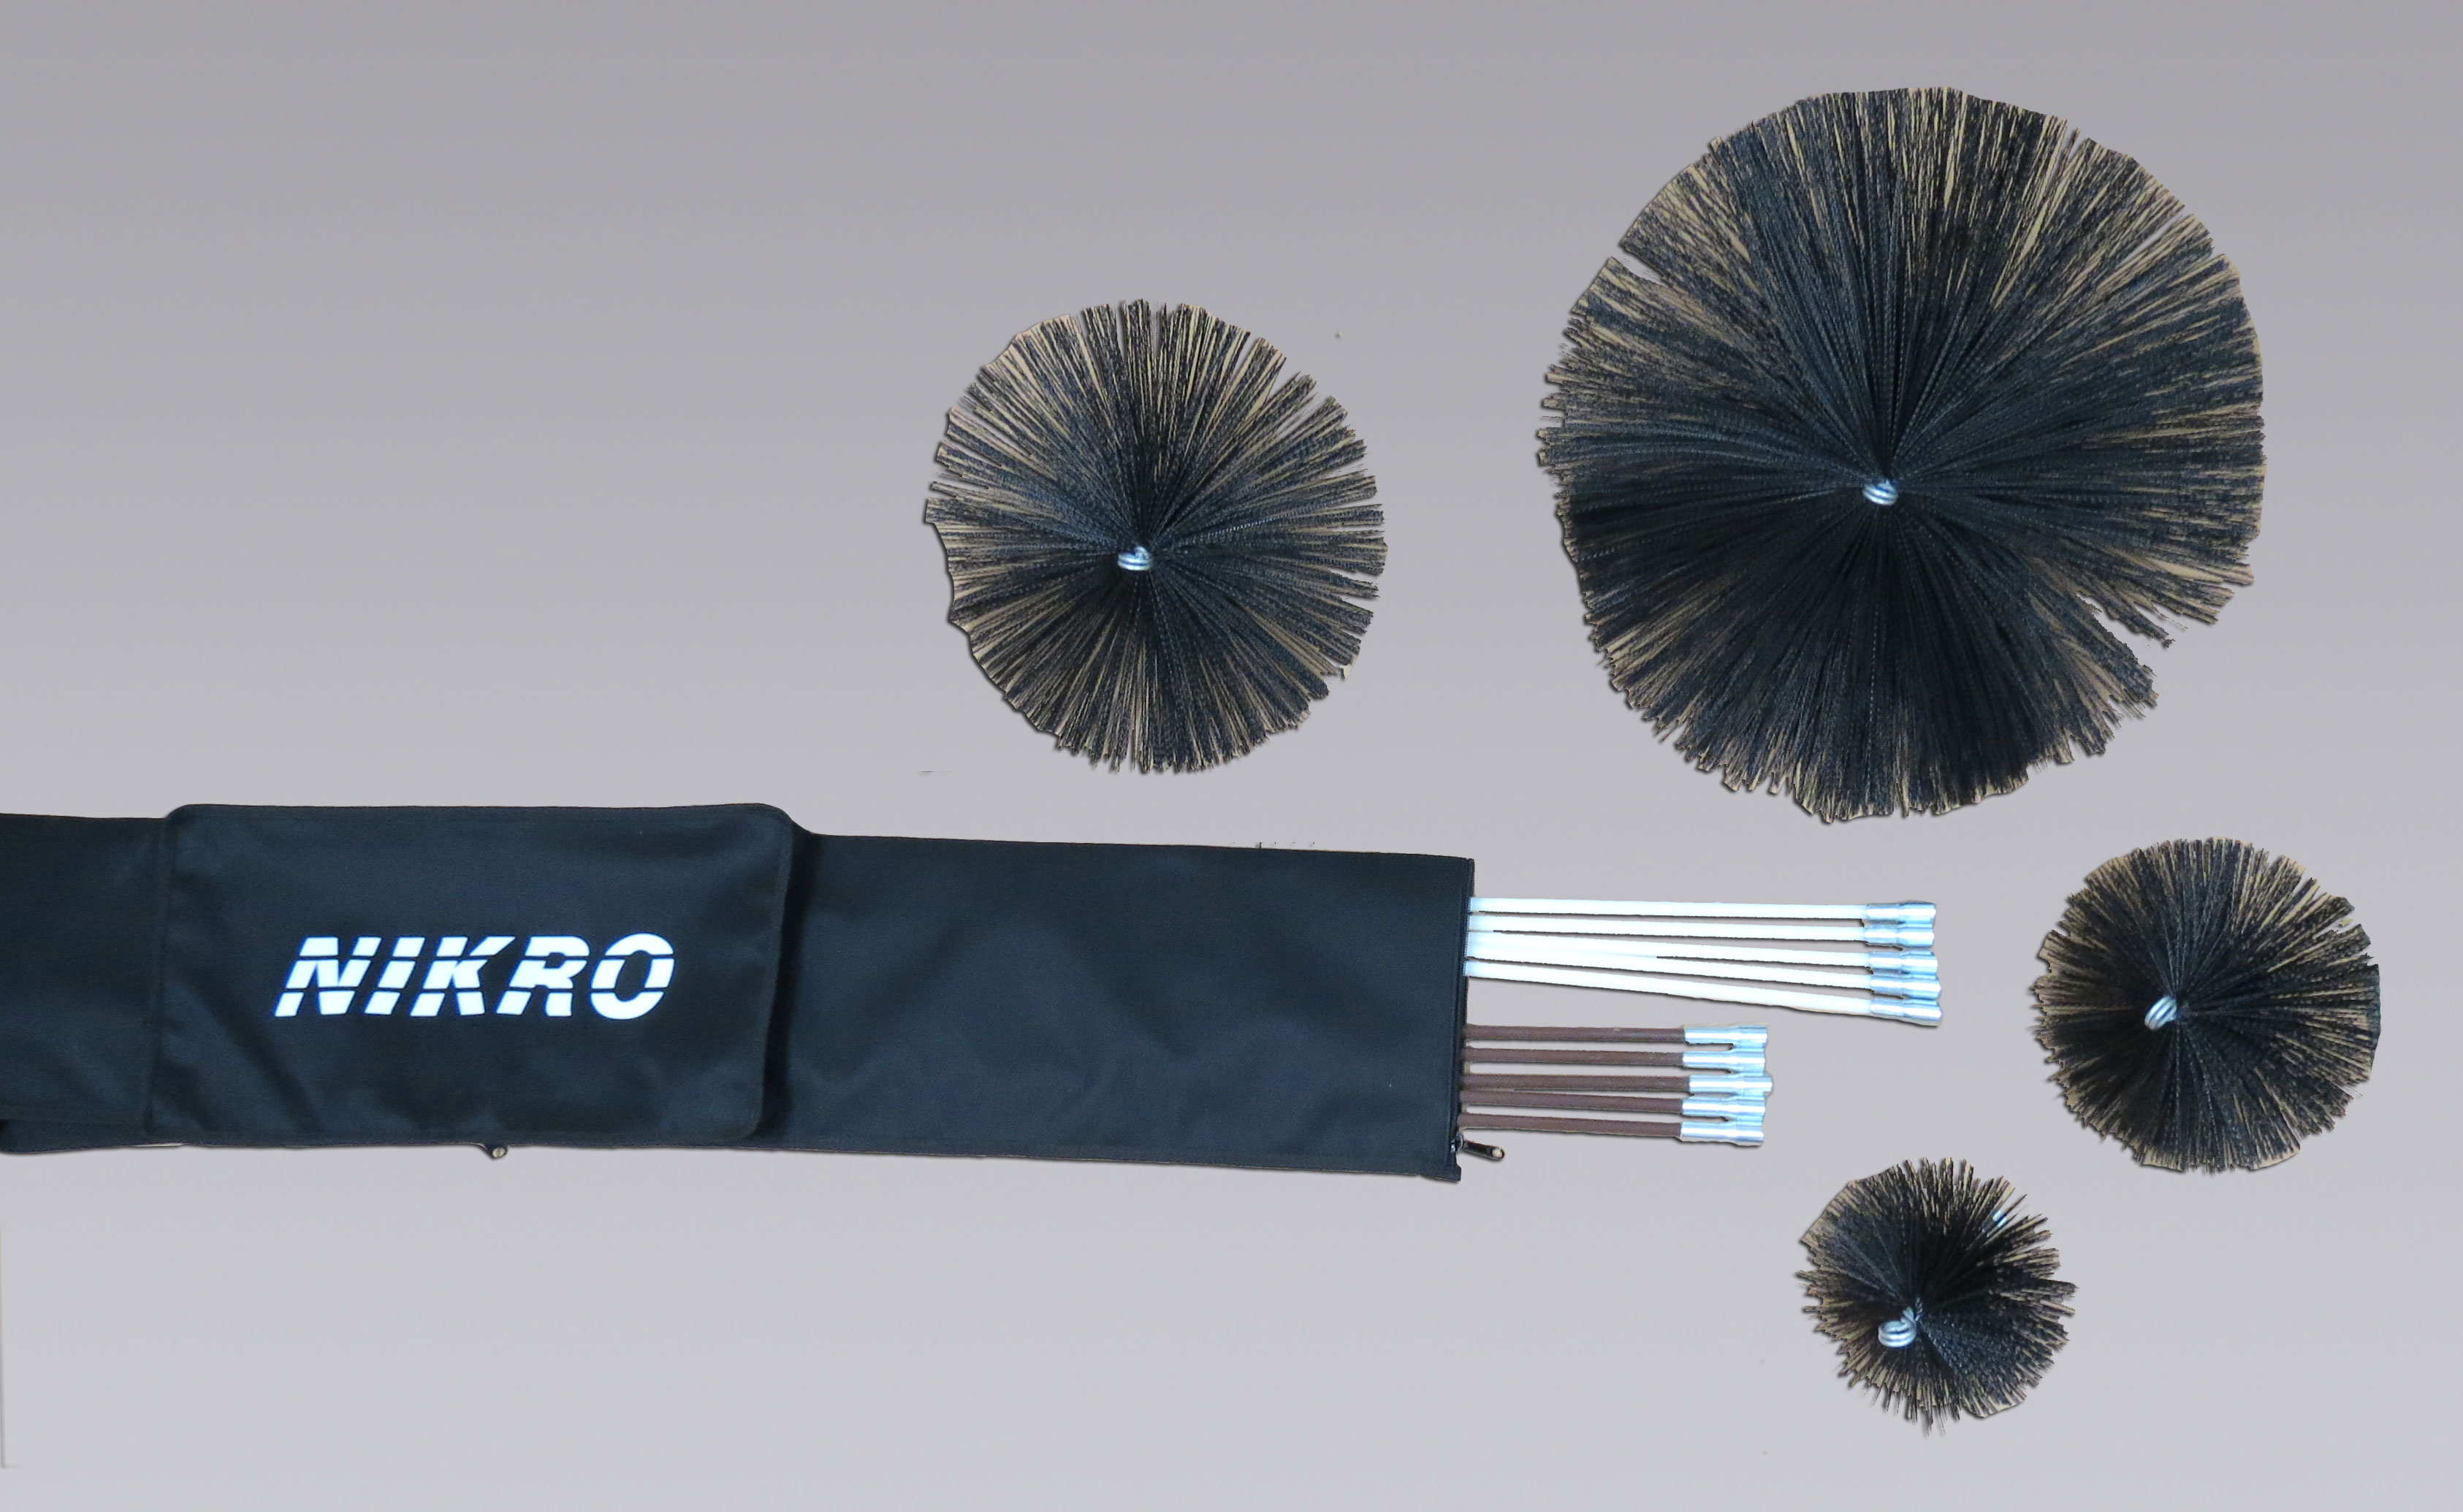 nikro air duct cleaning rods and brushes